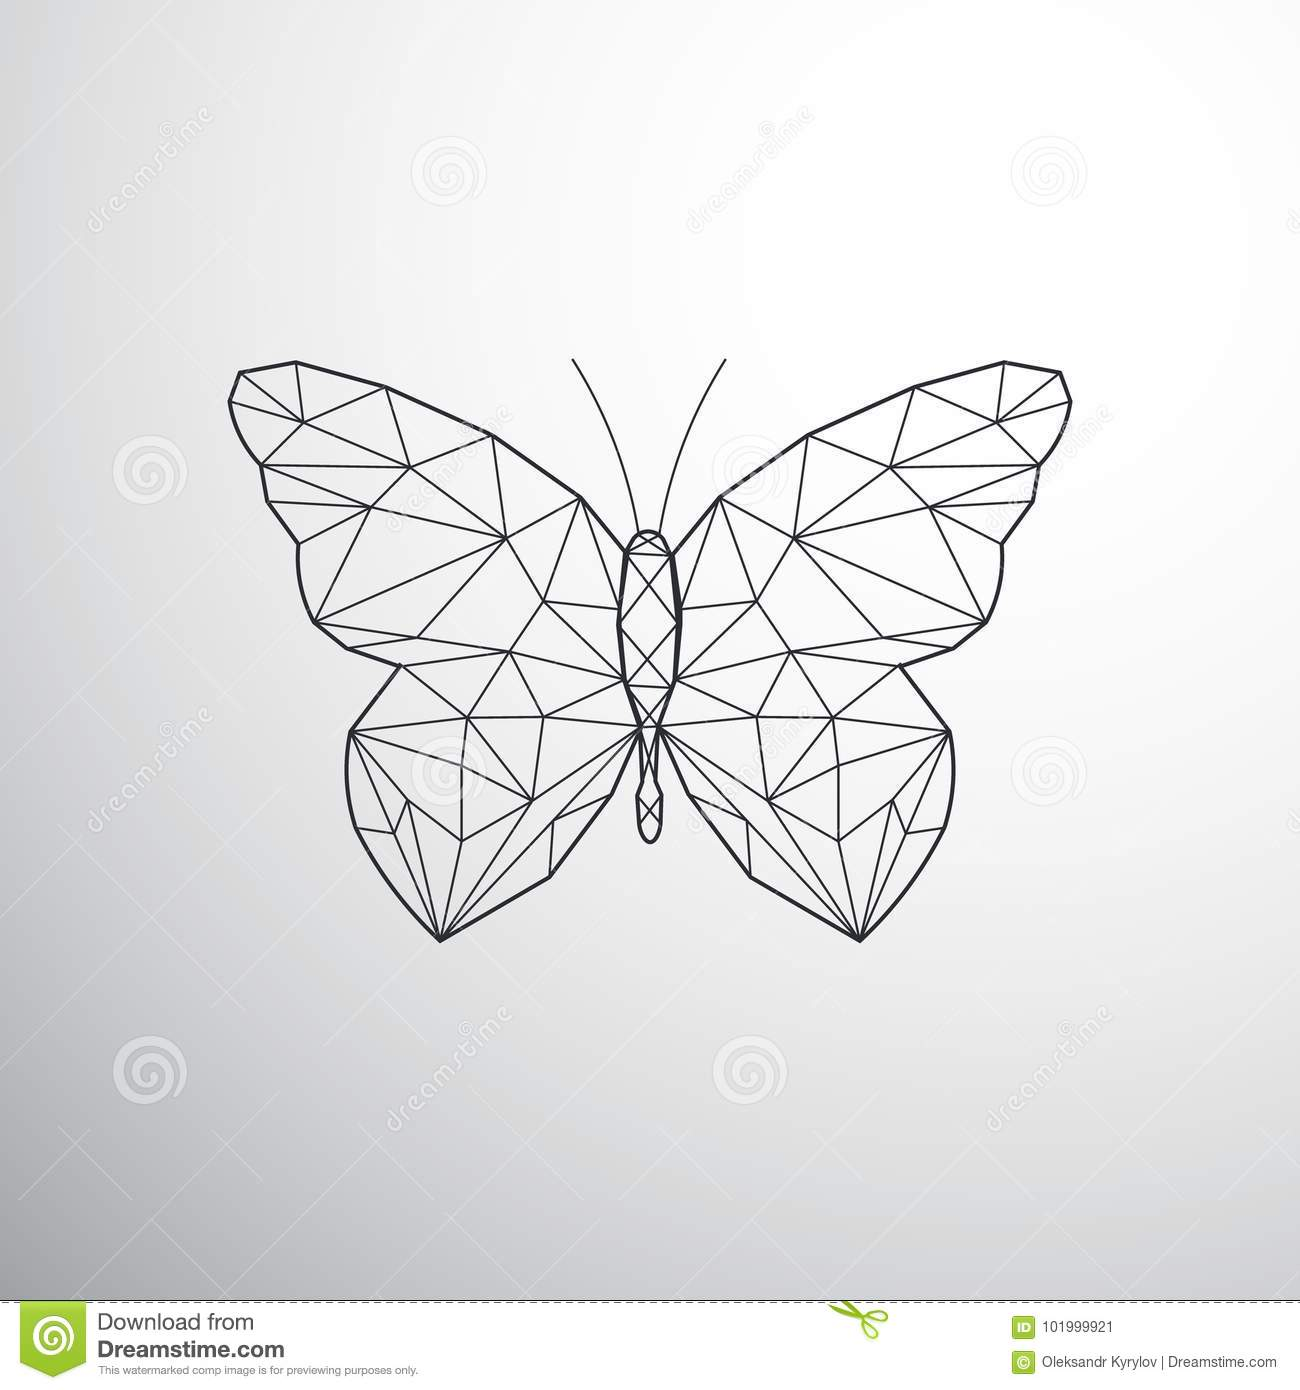 20250701a Geometric butterfly stock vector. Illustration of origami - 101999921